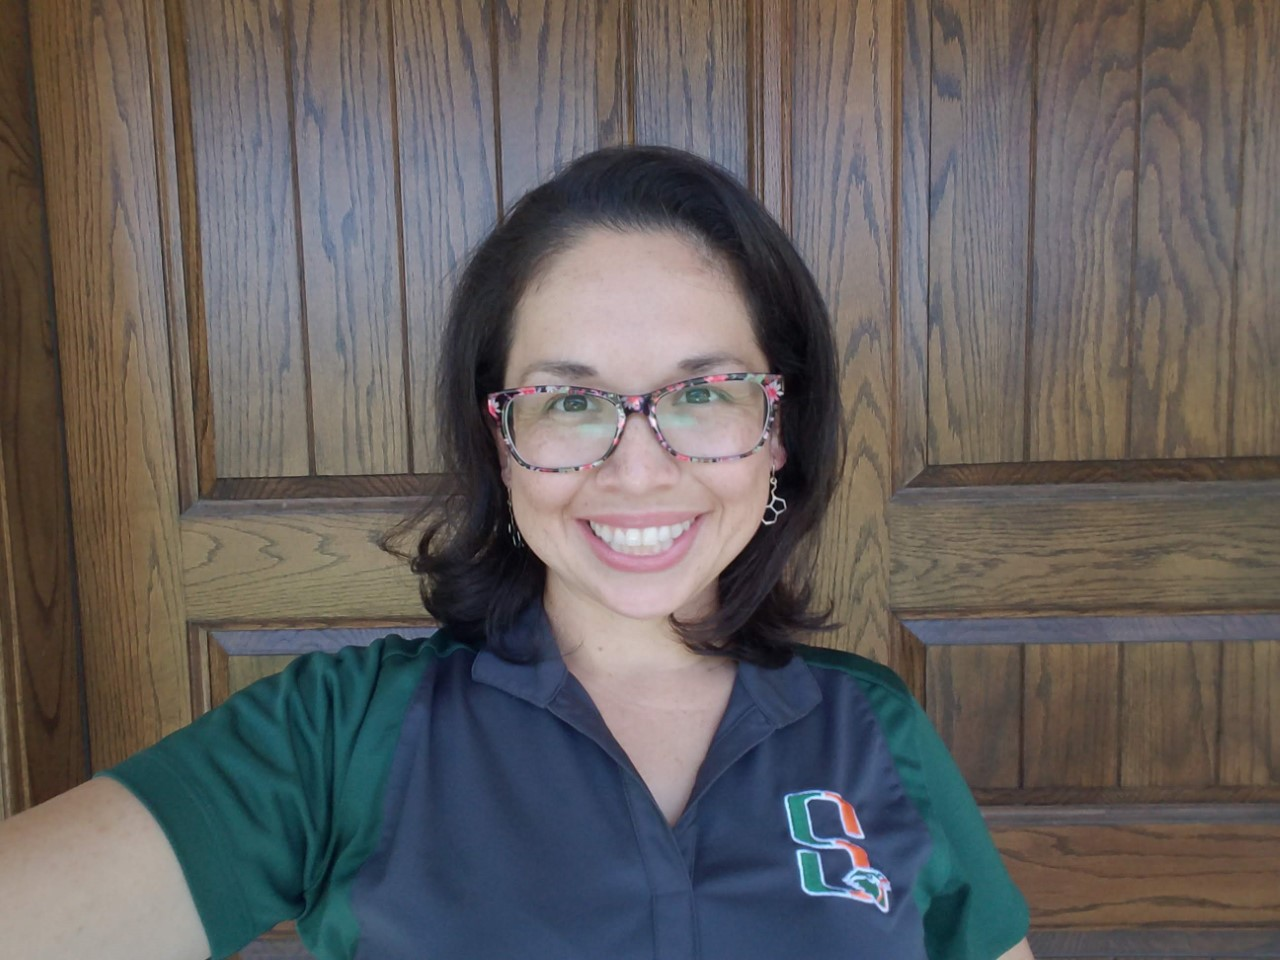 Harlingen South educator selected for Pre-AP National Faculty